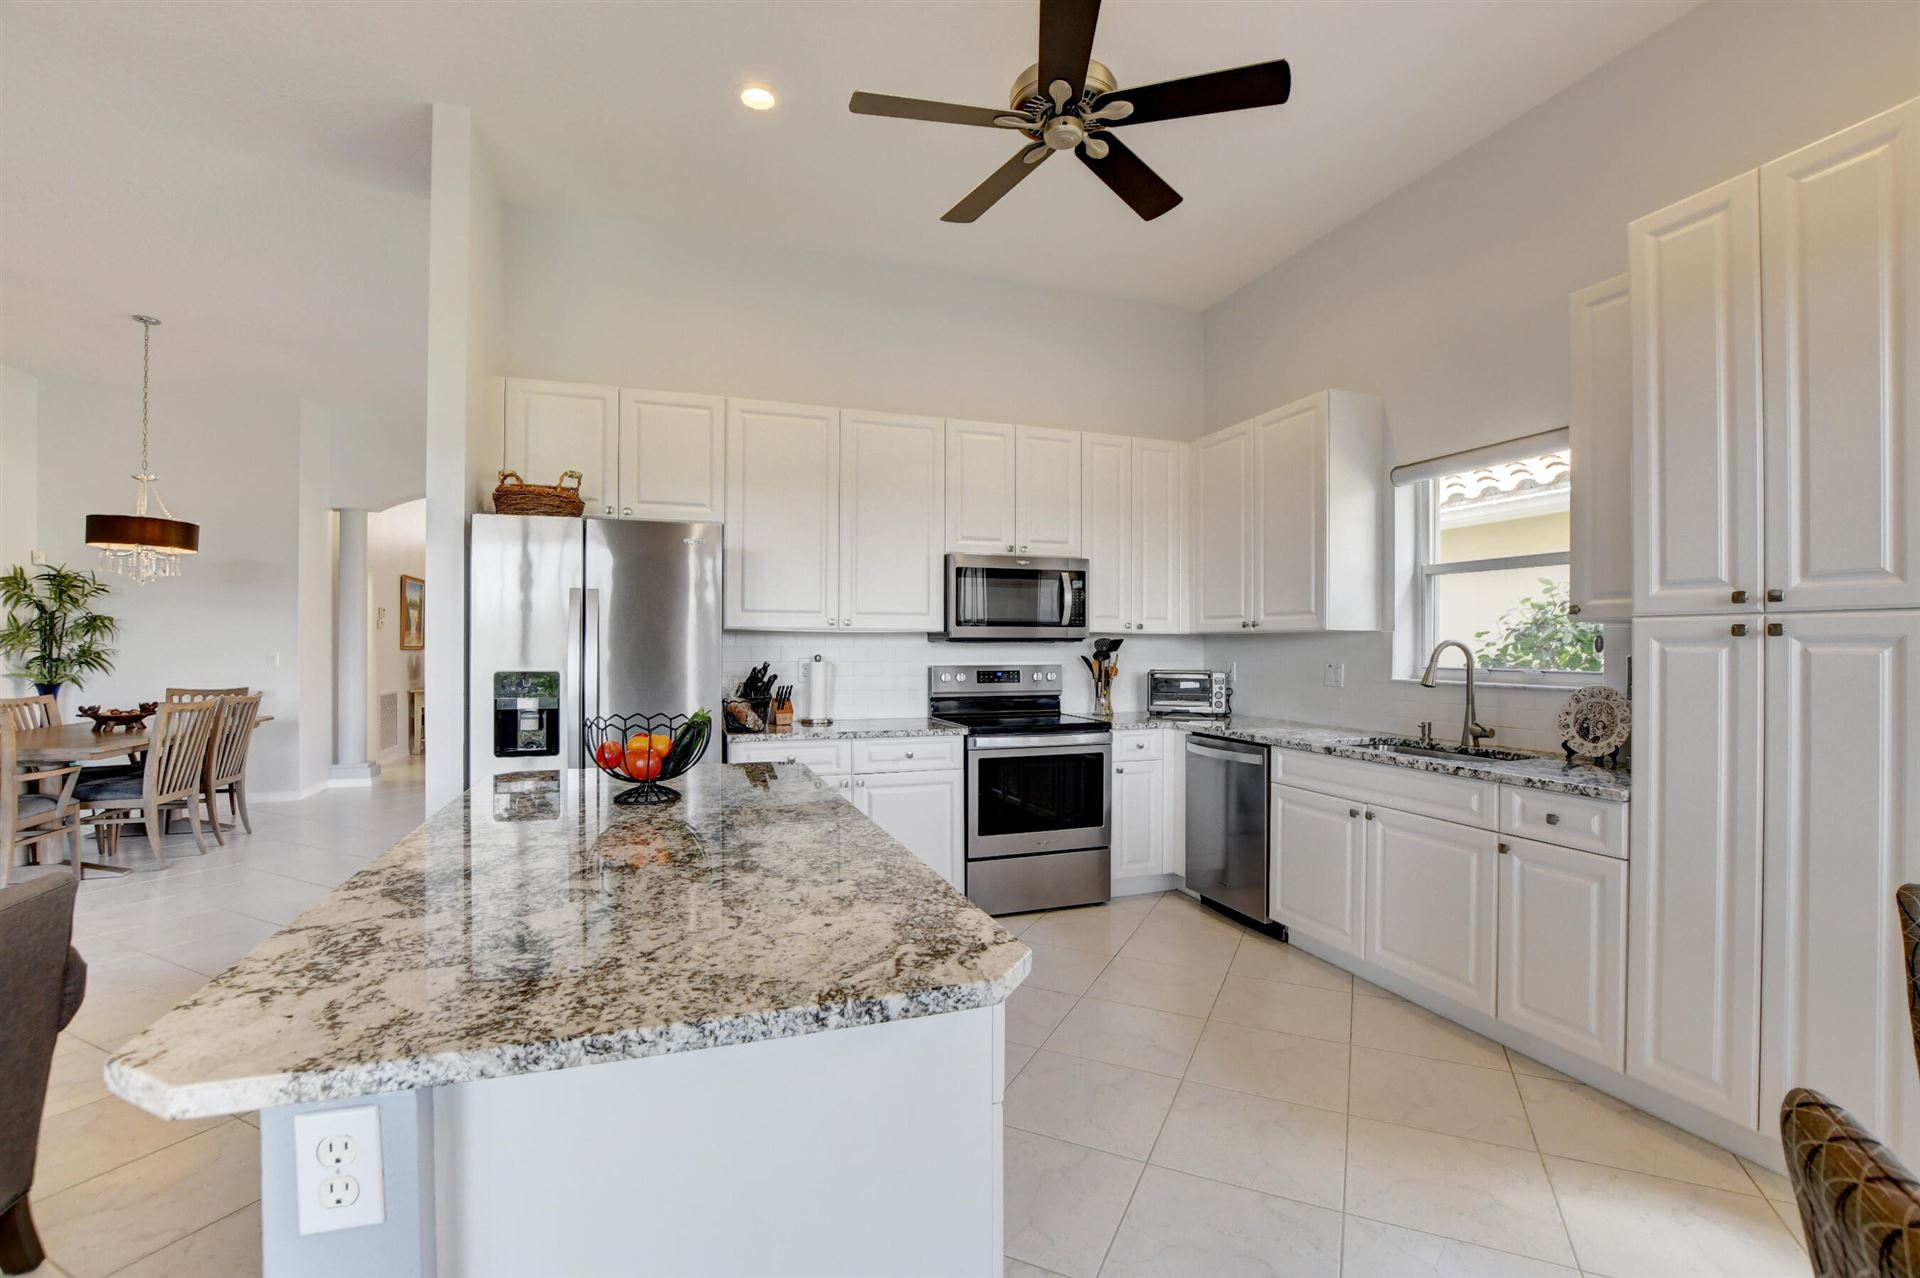 7268 Trentino Way, Boynton Beach, FL 33472 - MLS#: RX-10699059